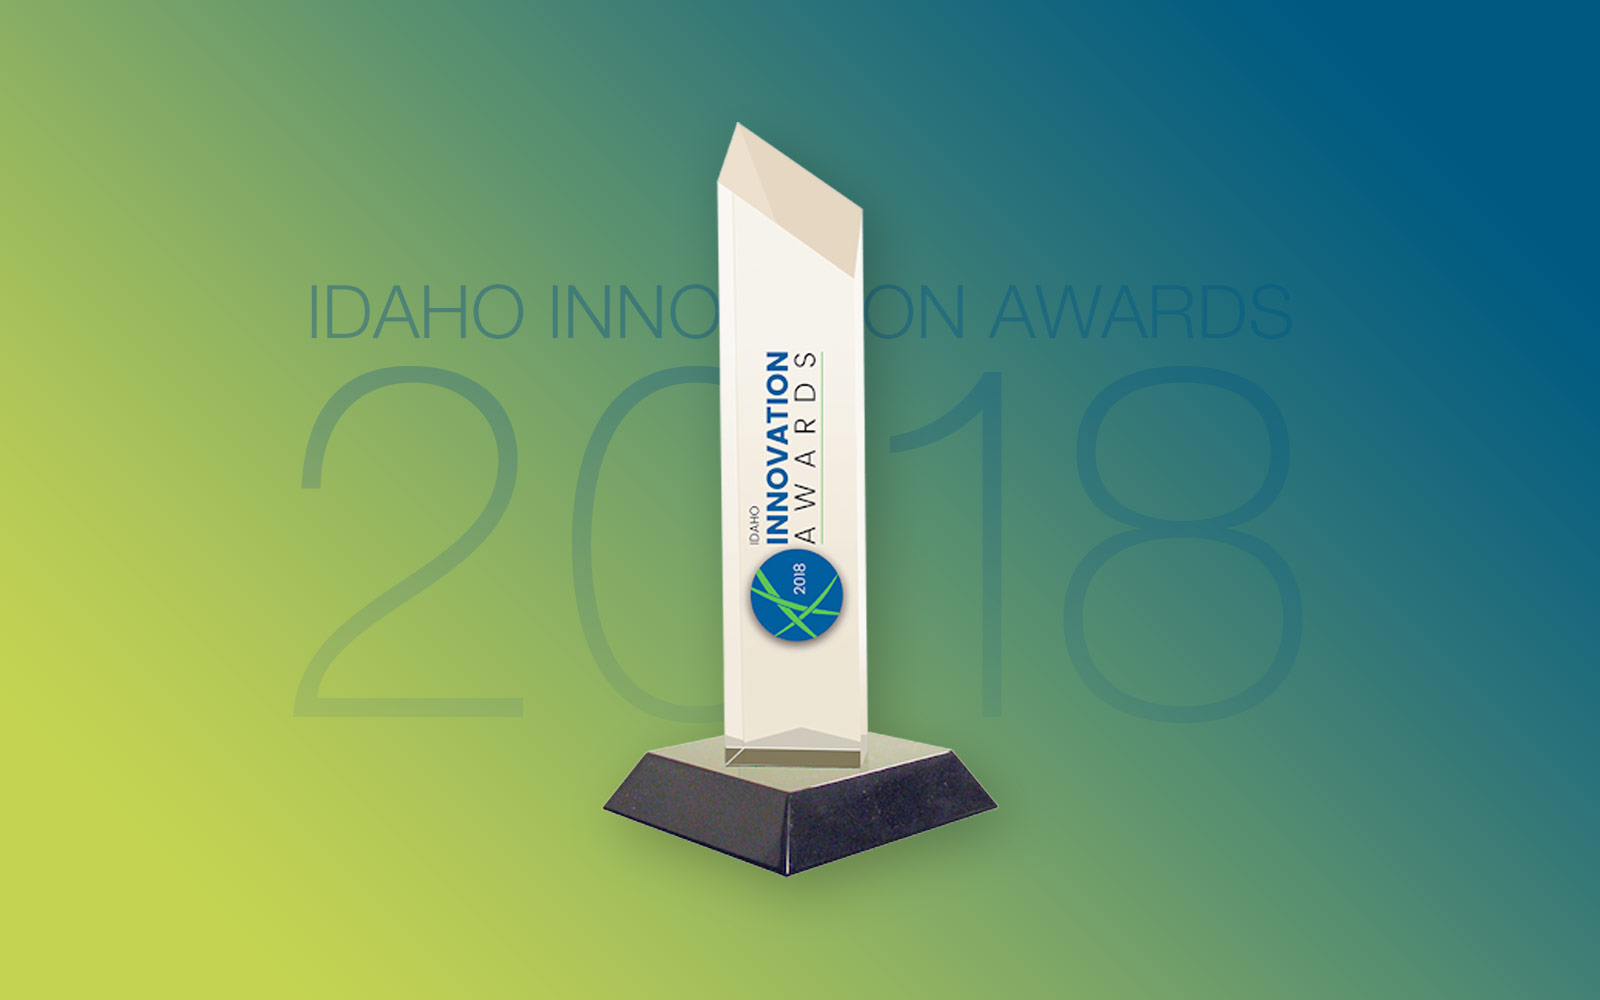 Idaho Innovation Awards 2018 image